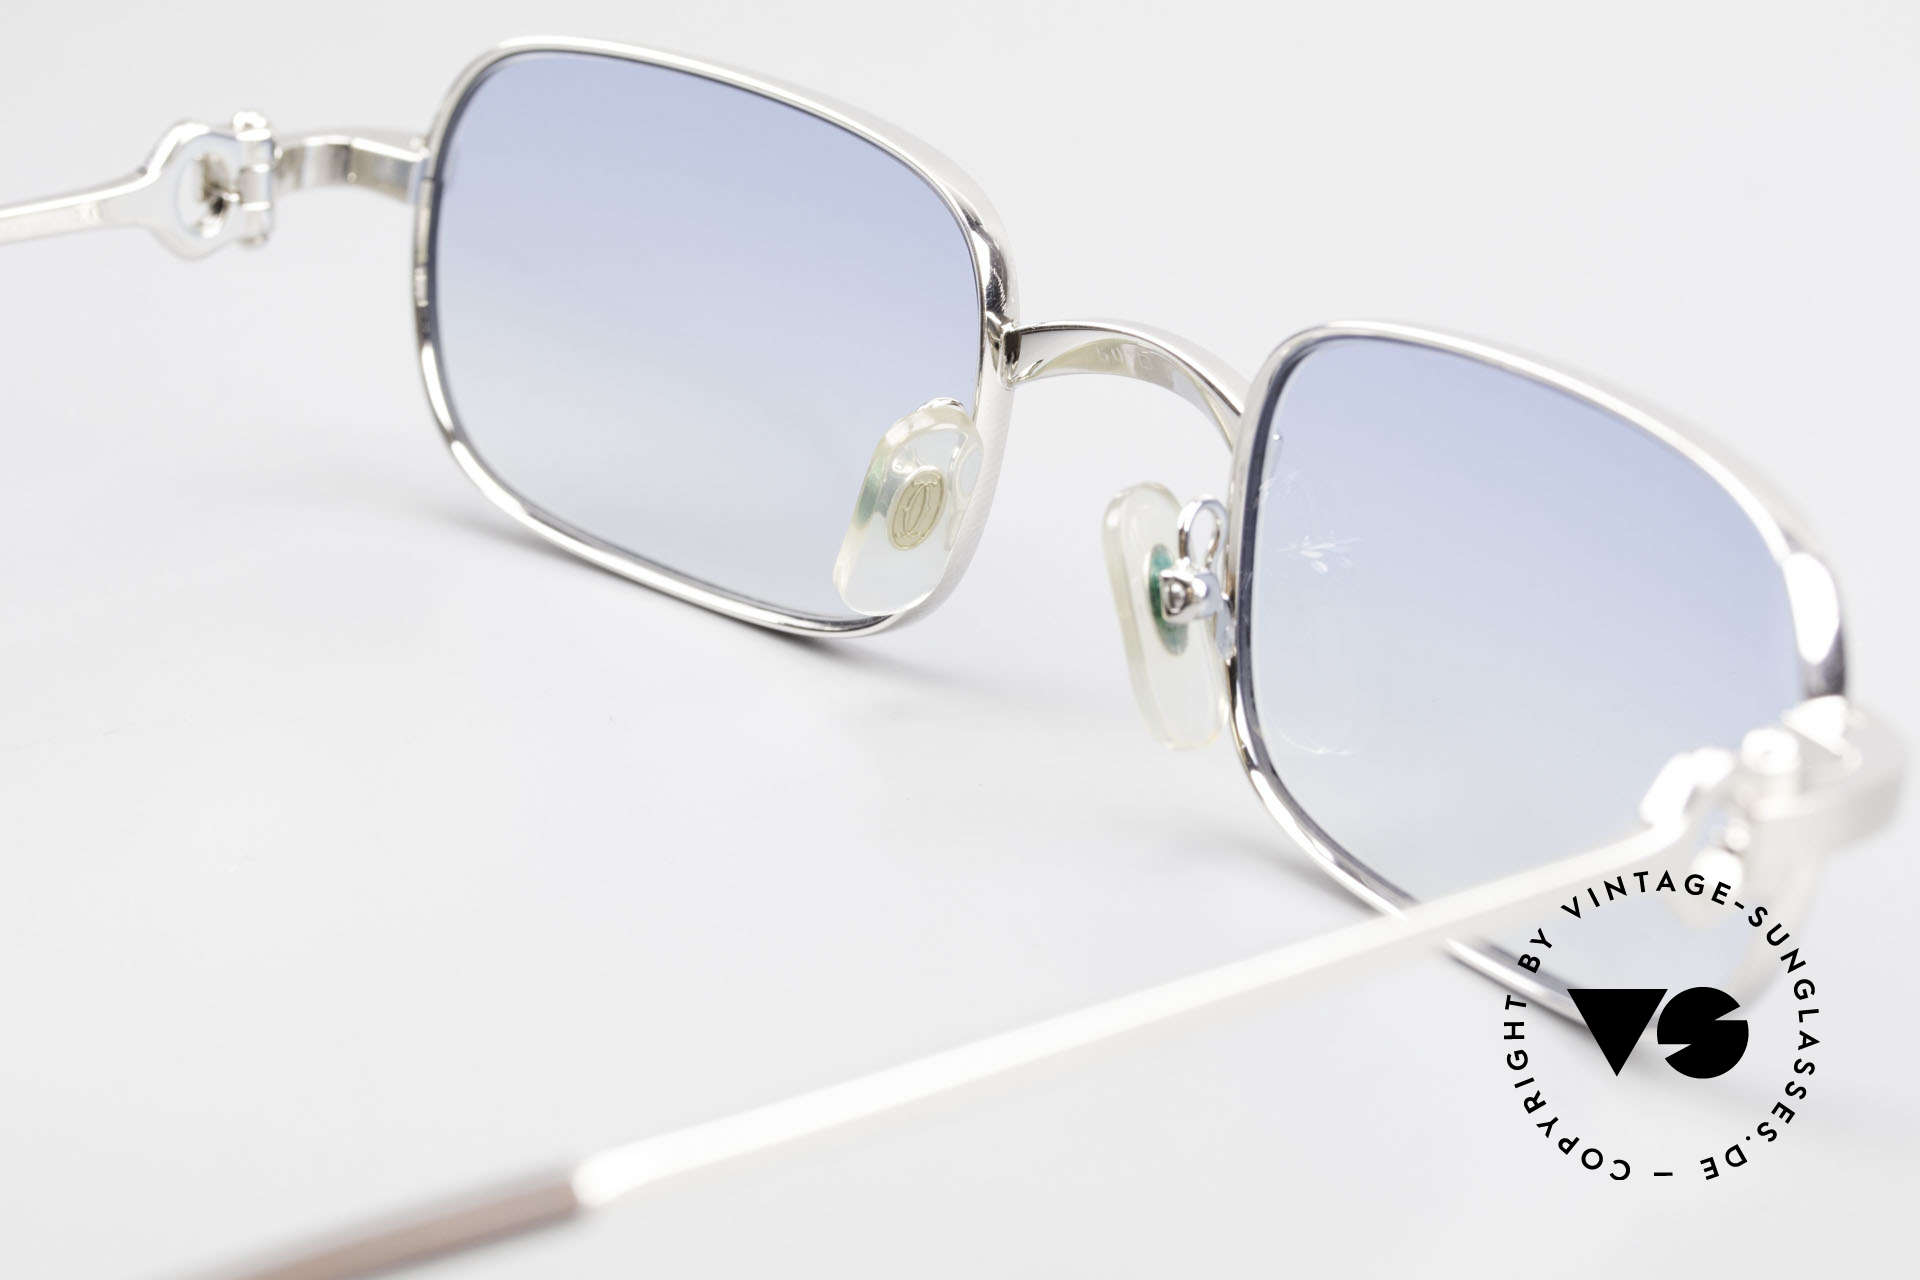 Cartier Dreamer Luxury Frame With Chanel Case, NO RETRO eyewear; an old original + CHANEL case, Made for Men